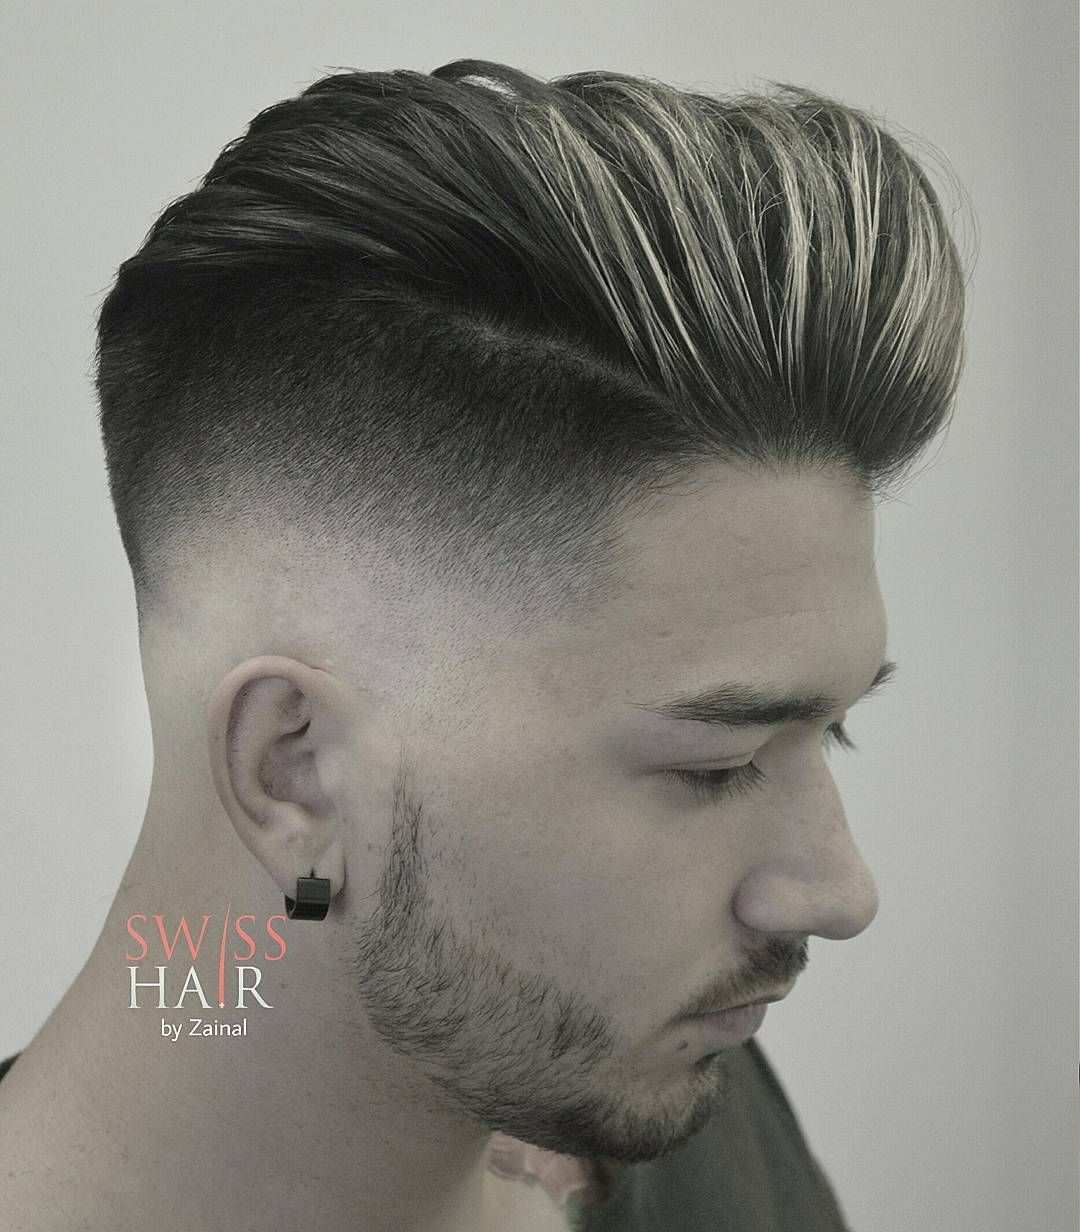 With Less Than 2 Weeks To Go In 2016 It Is Time To Pick Out Your New Look  For The New Year. This Is Our Guide To The Best New Hairstyles For Men Being